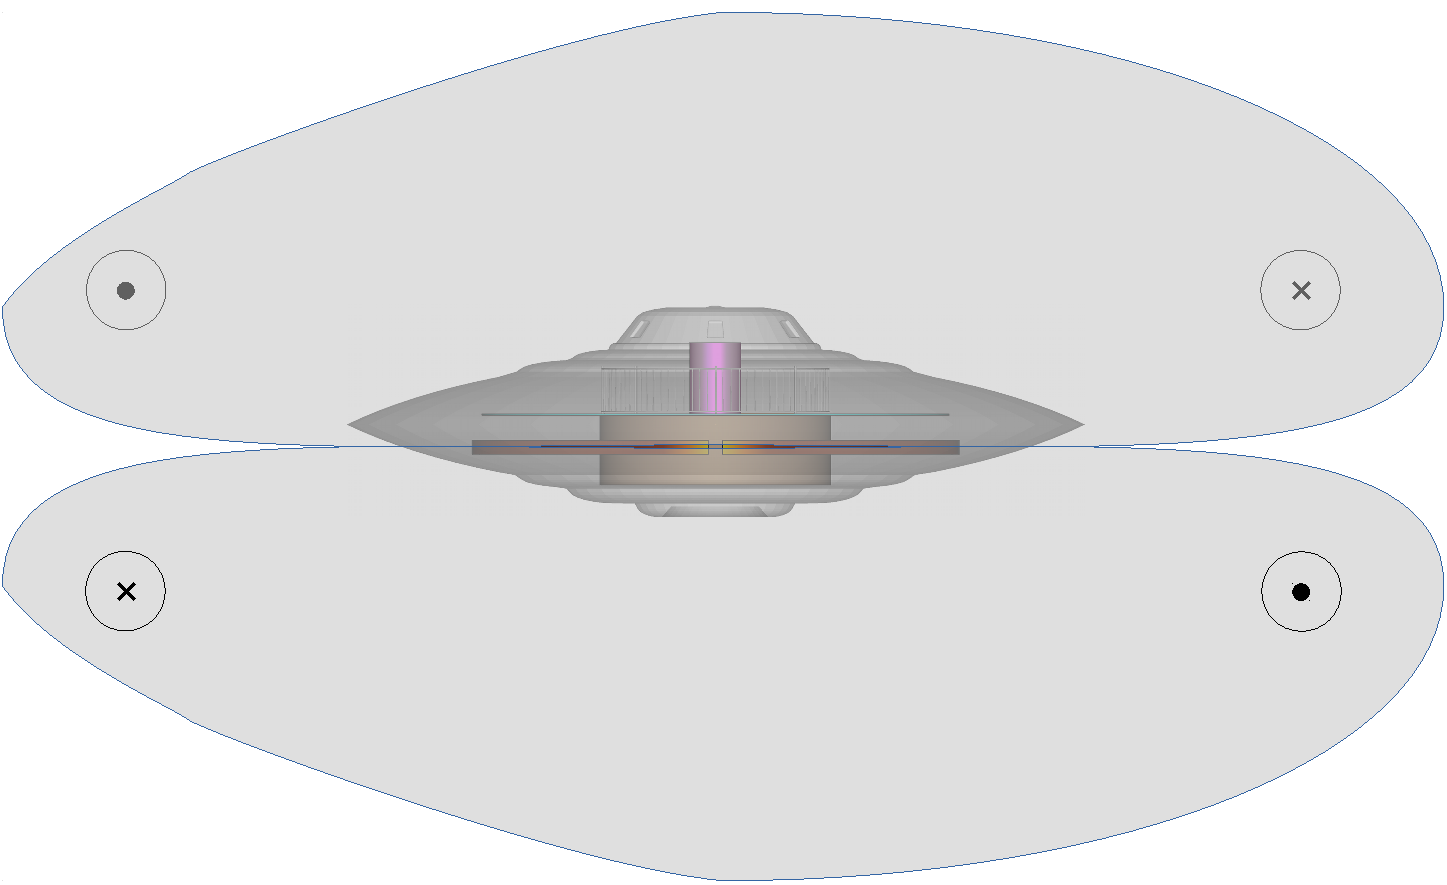 magvid-saucer-travelling-rightwards.png